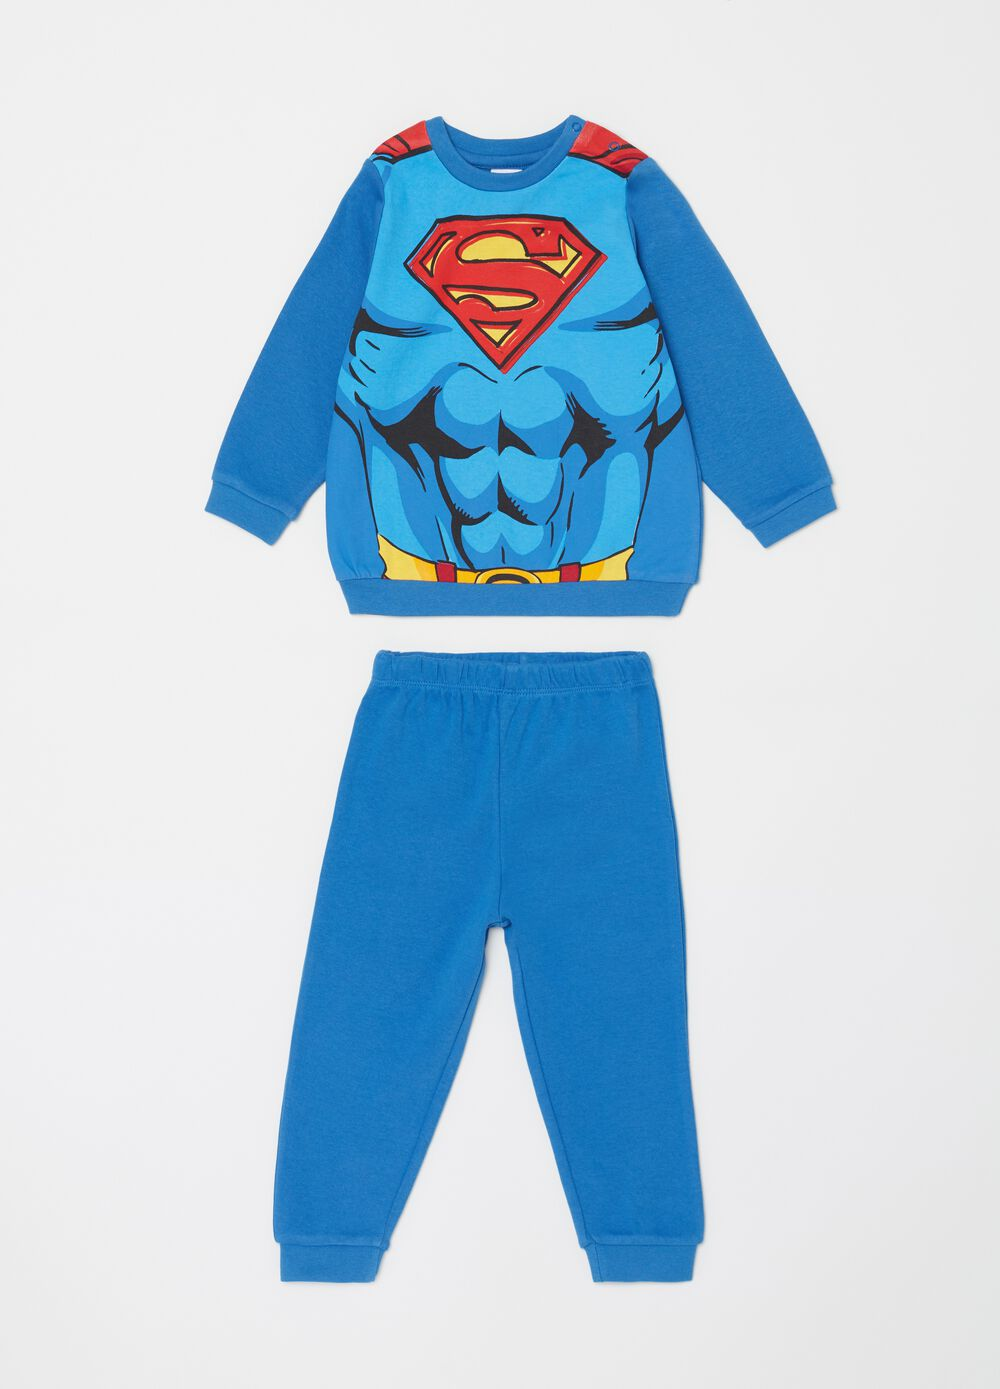 Superman pyjamas with long sleeves [DC COMICS]